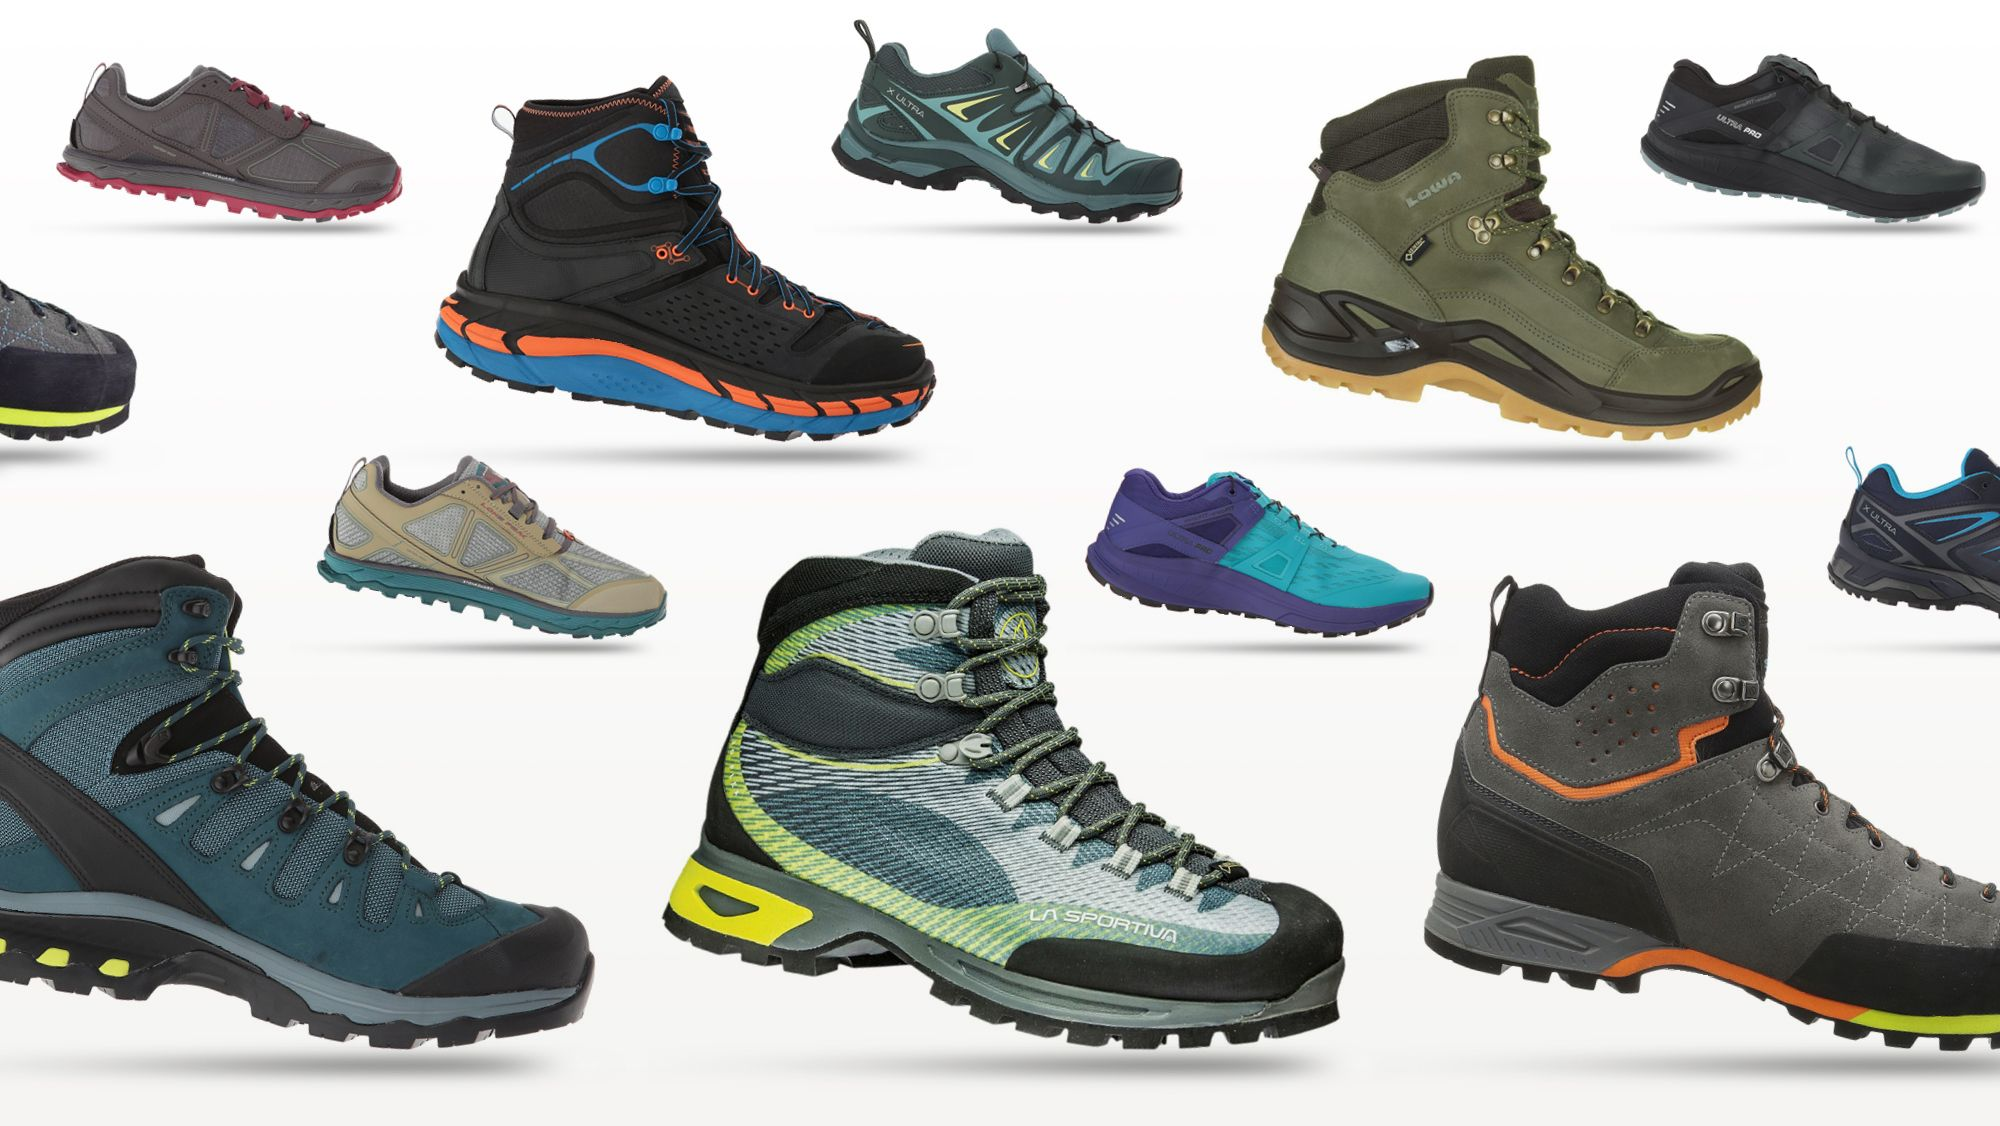 7cdf805084aa The 10 Best Hiking Boots and Trail-Running Shoes This Year